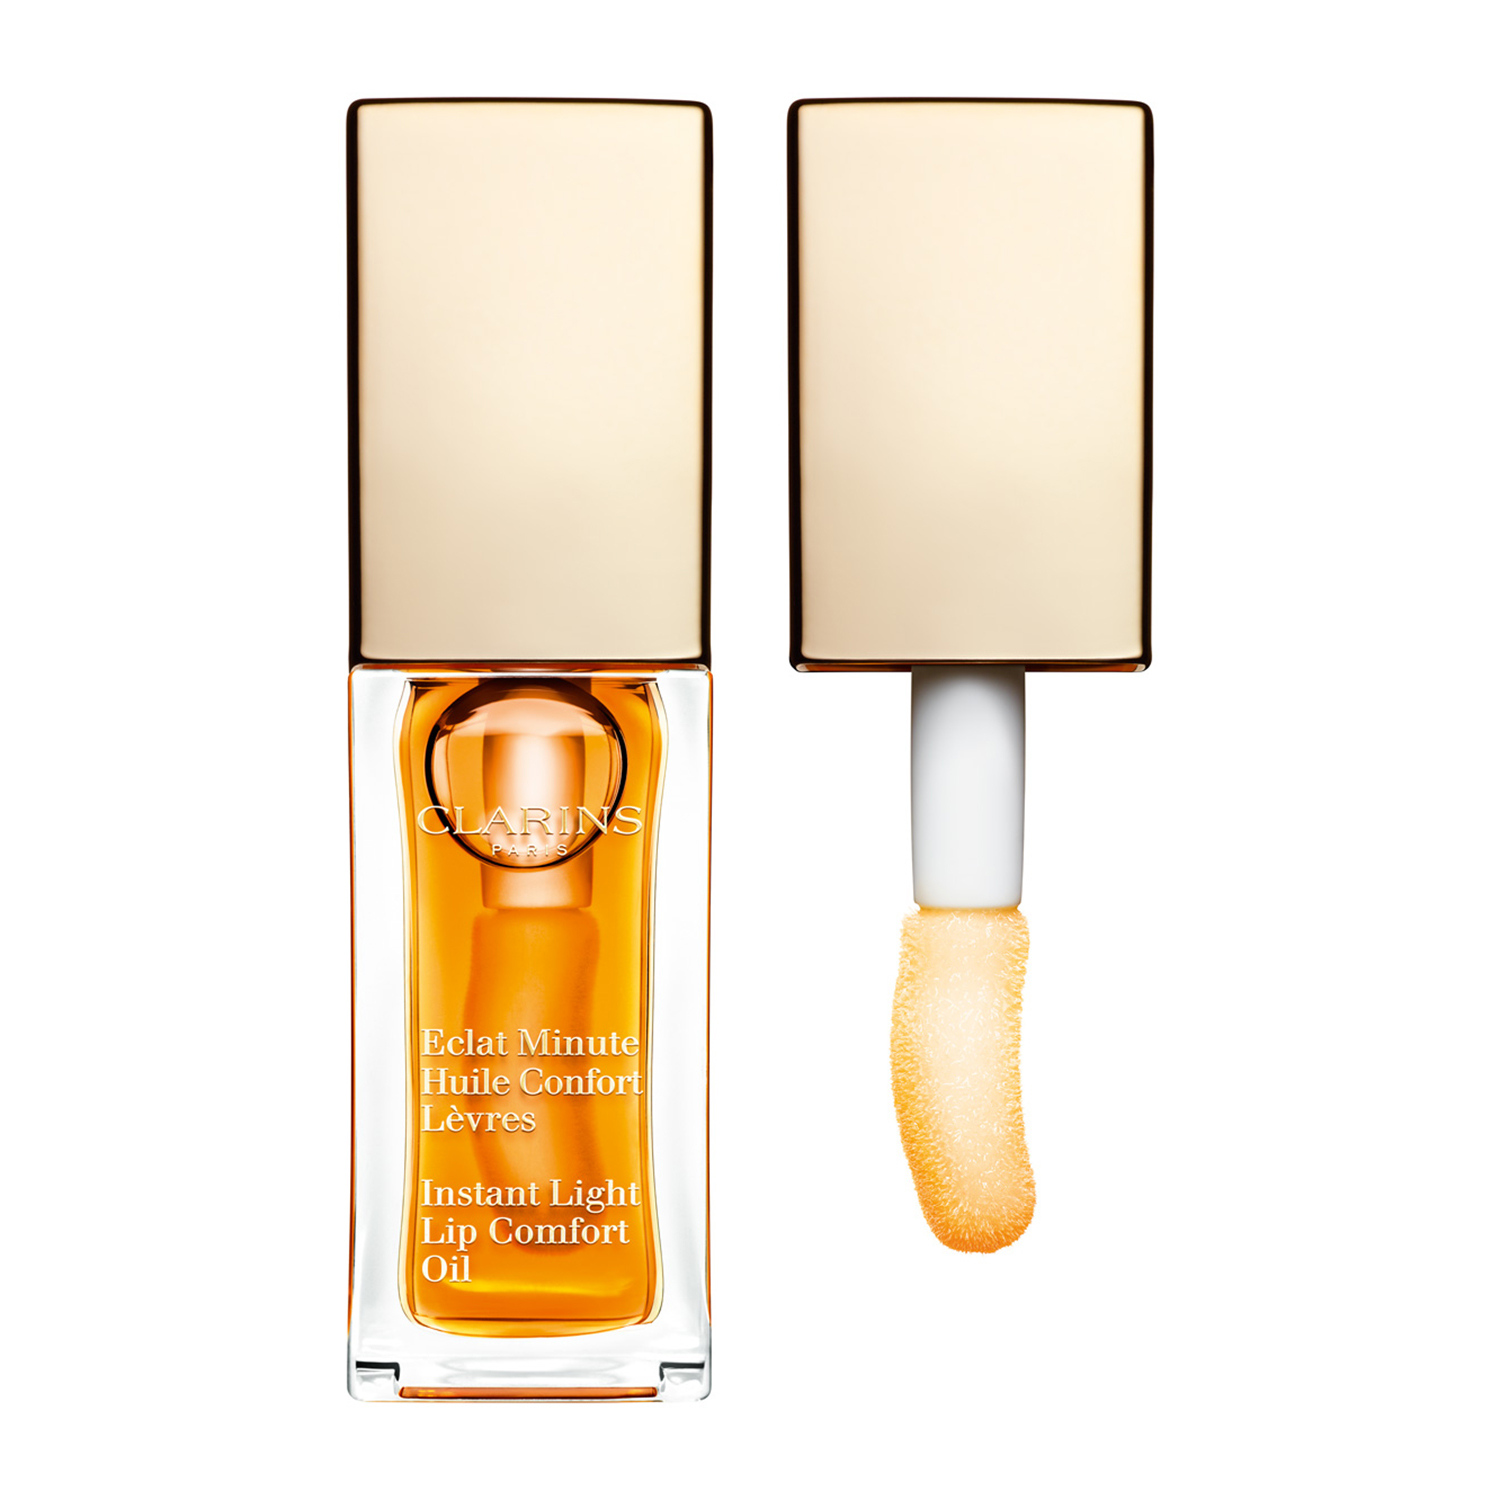 201 Clat Minute Huile Confort L 232 Vres Clarins